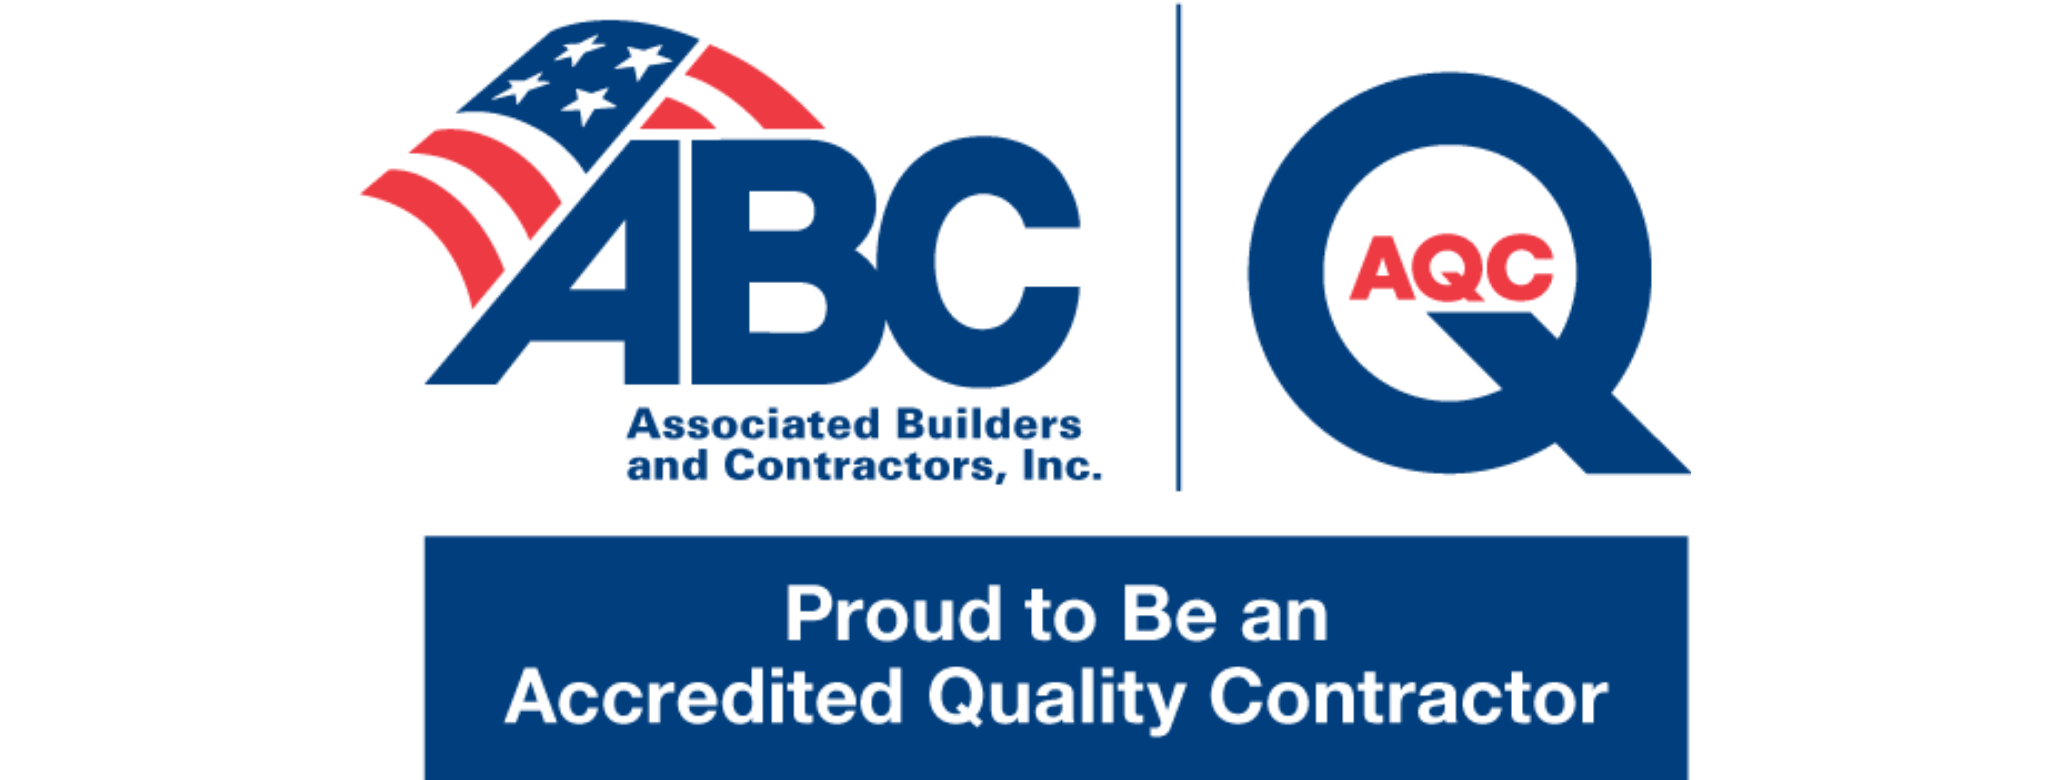 Climatech Inc. Receives 2020 Accredited Quality Contractor (AQC) Award